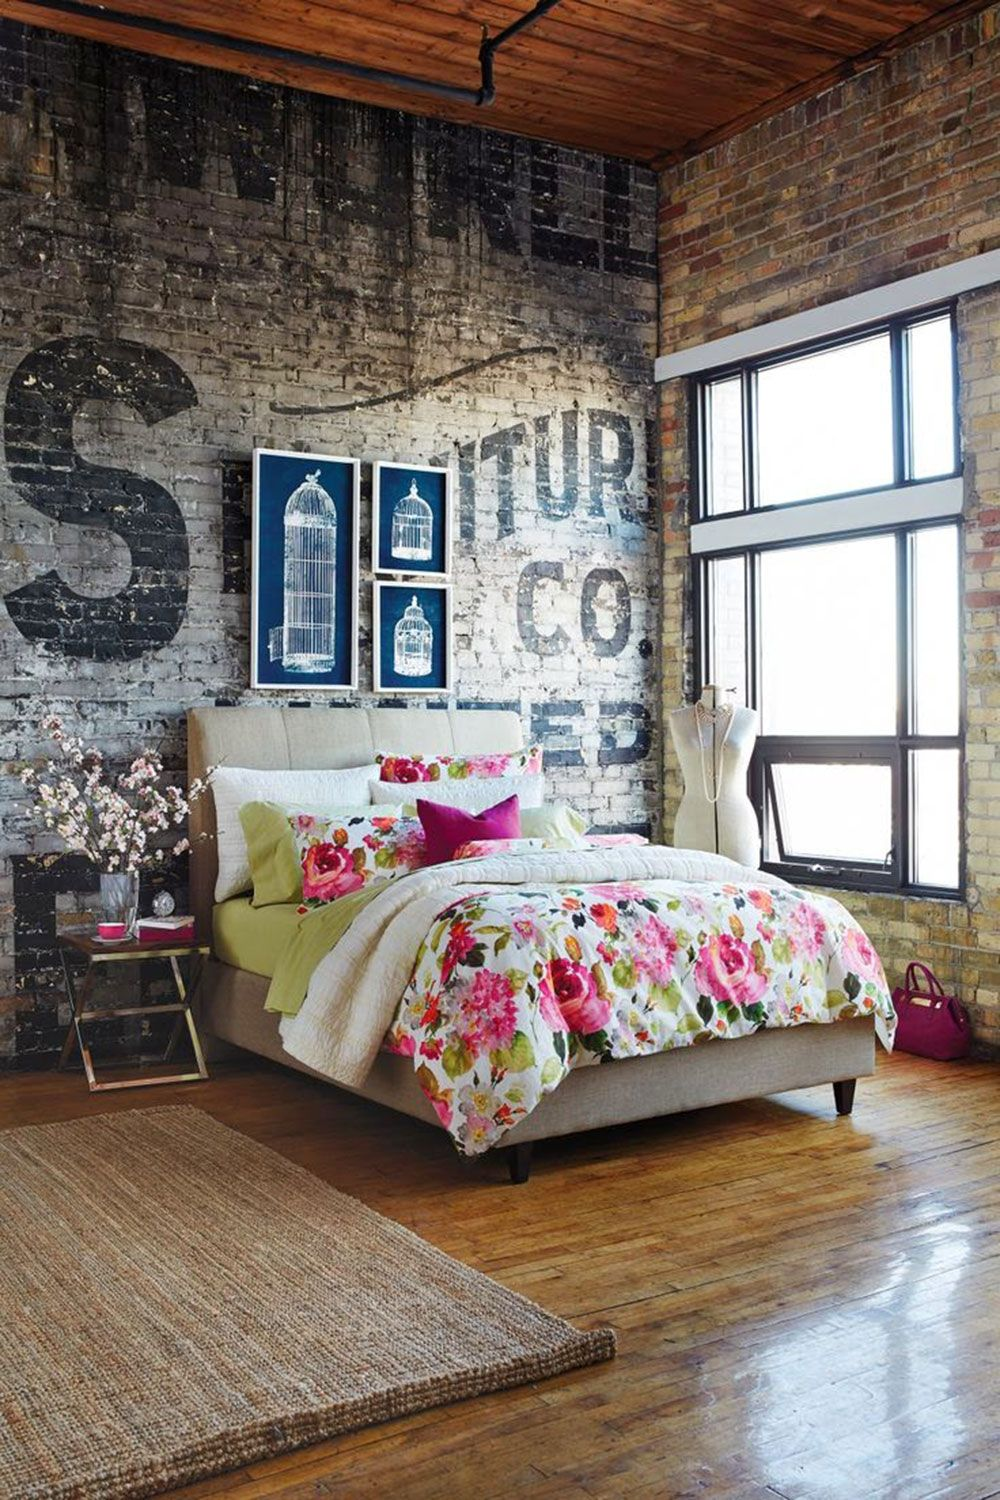 Brick Wall Design 19 Stunning Interior Brick Wall Ideas Decorate With Exposed